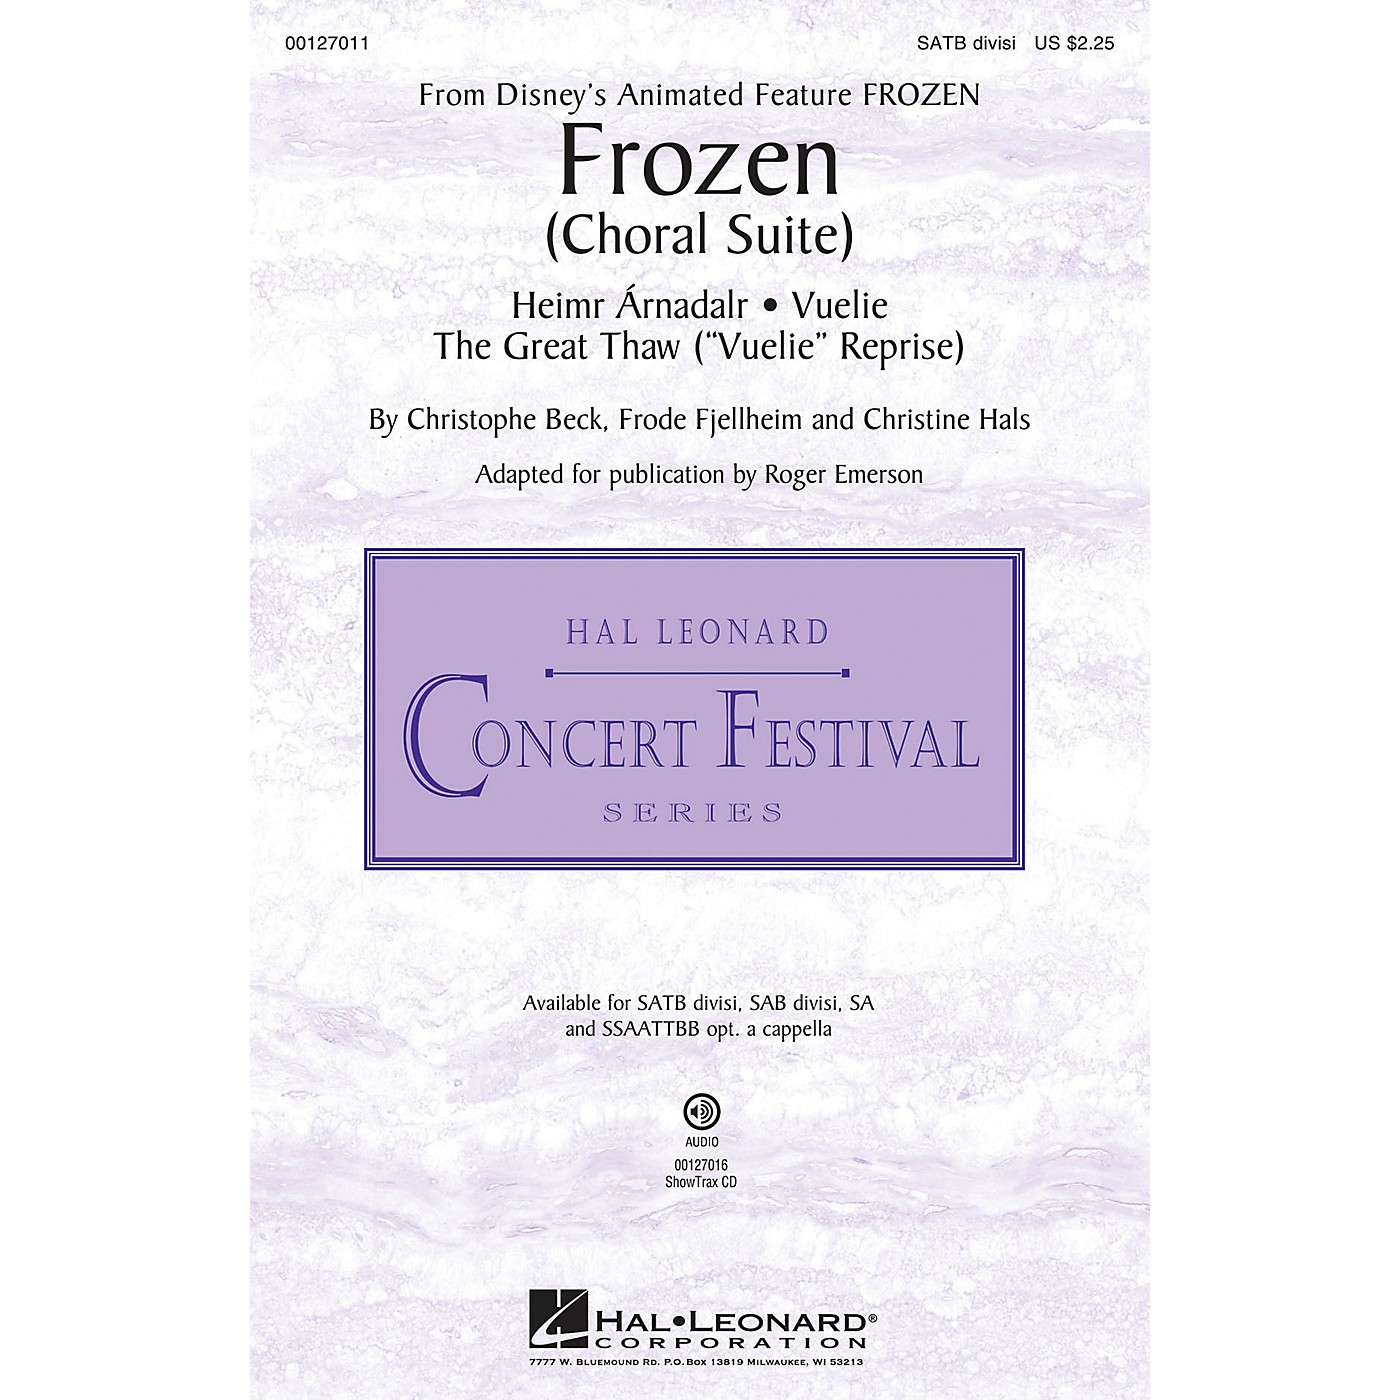 Hal Leonard Frozen (Choral Suite) SAB Divisi Composed by Christophe Beck thumbnail